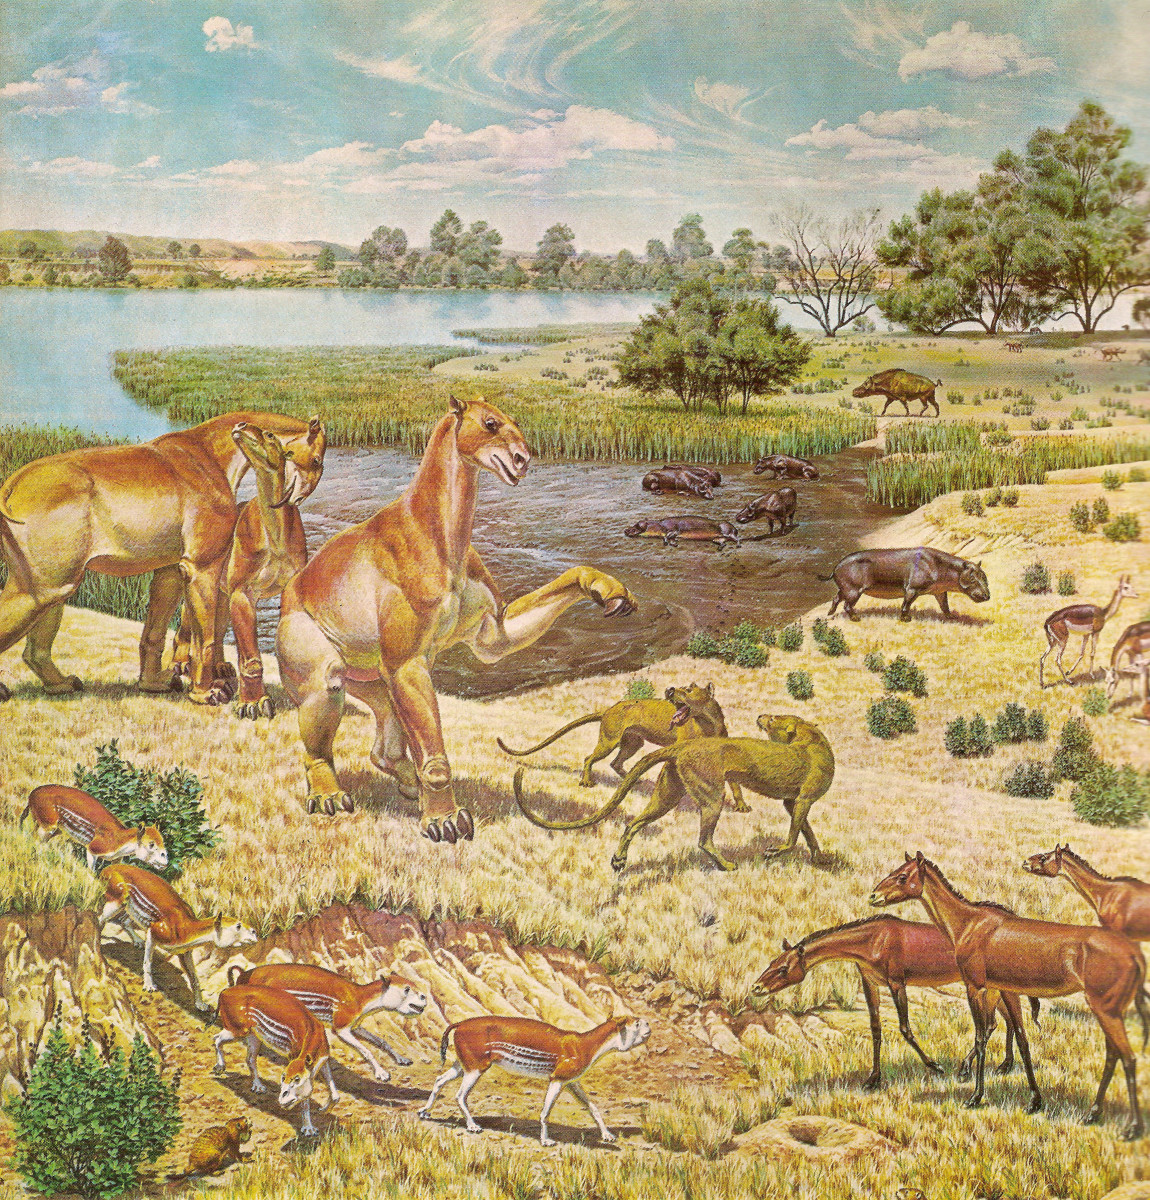 Life on Earth During the Miocene Epoch